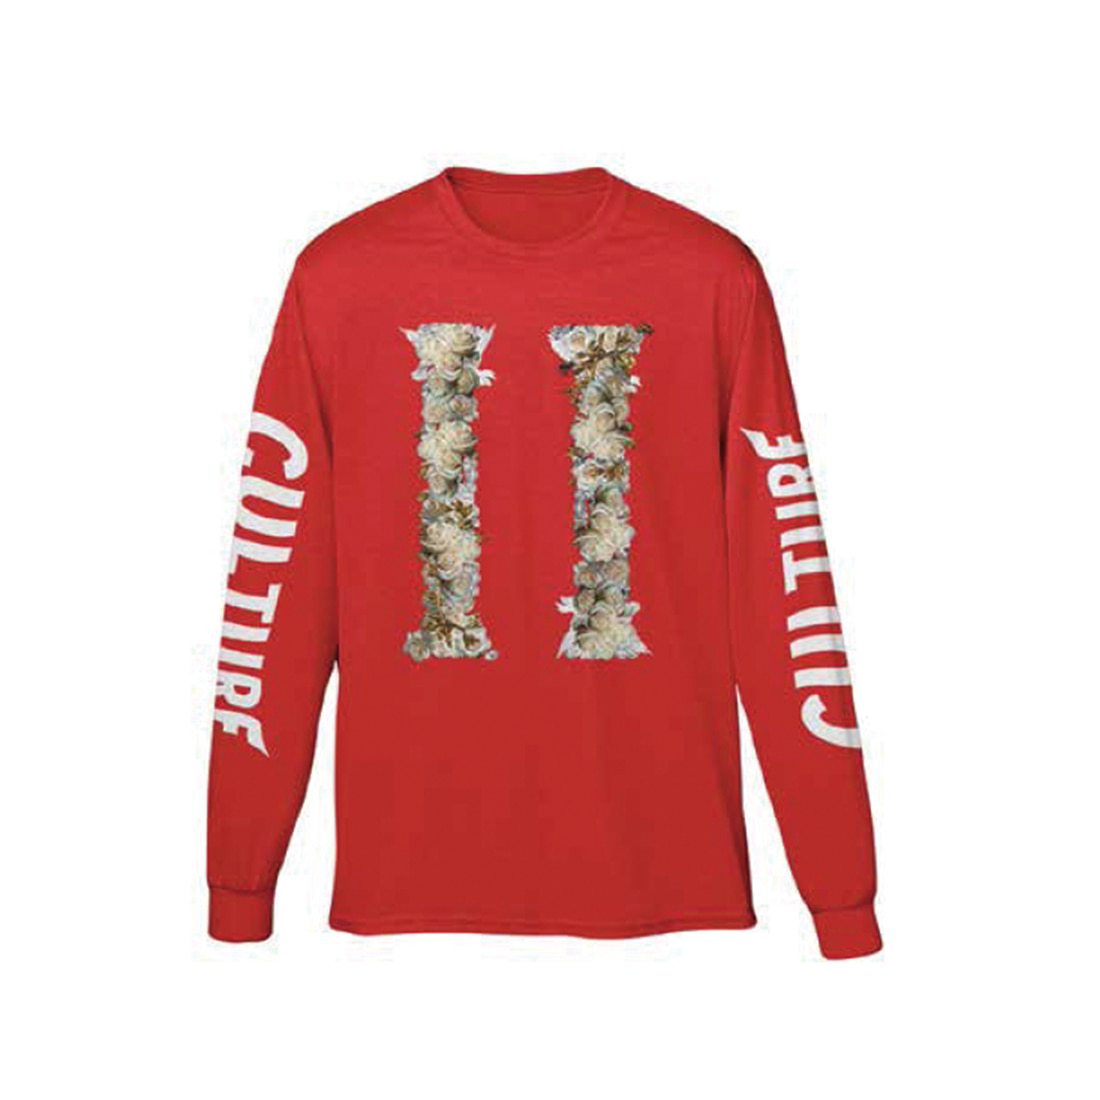 [Migos] CULTURE II LONG SLEEVE RED